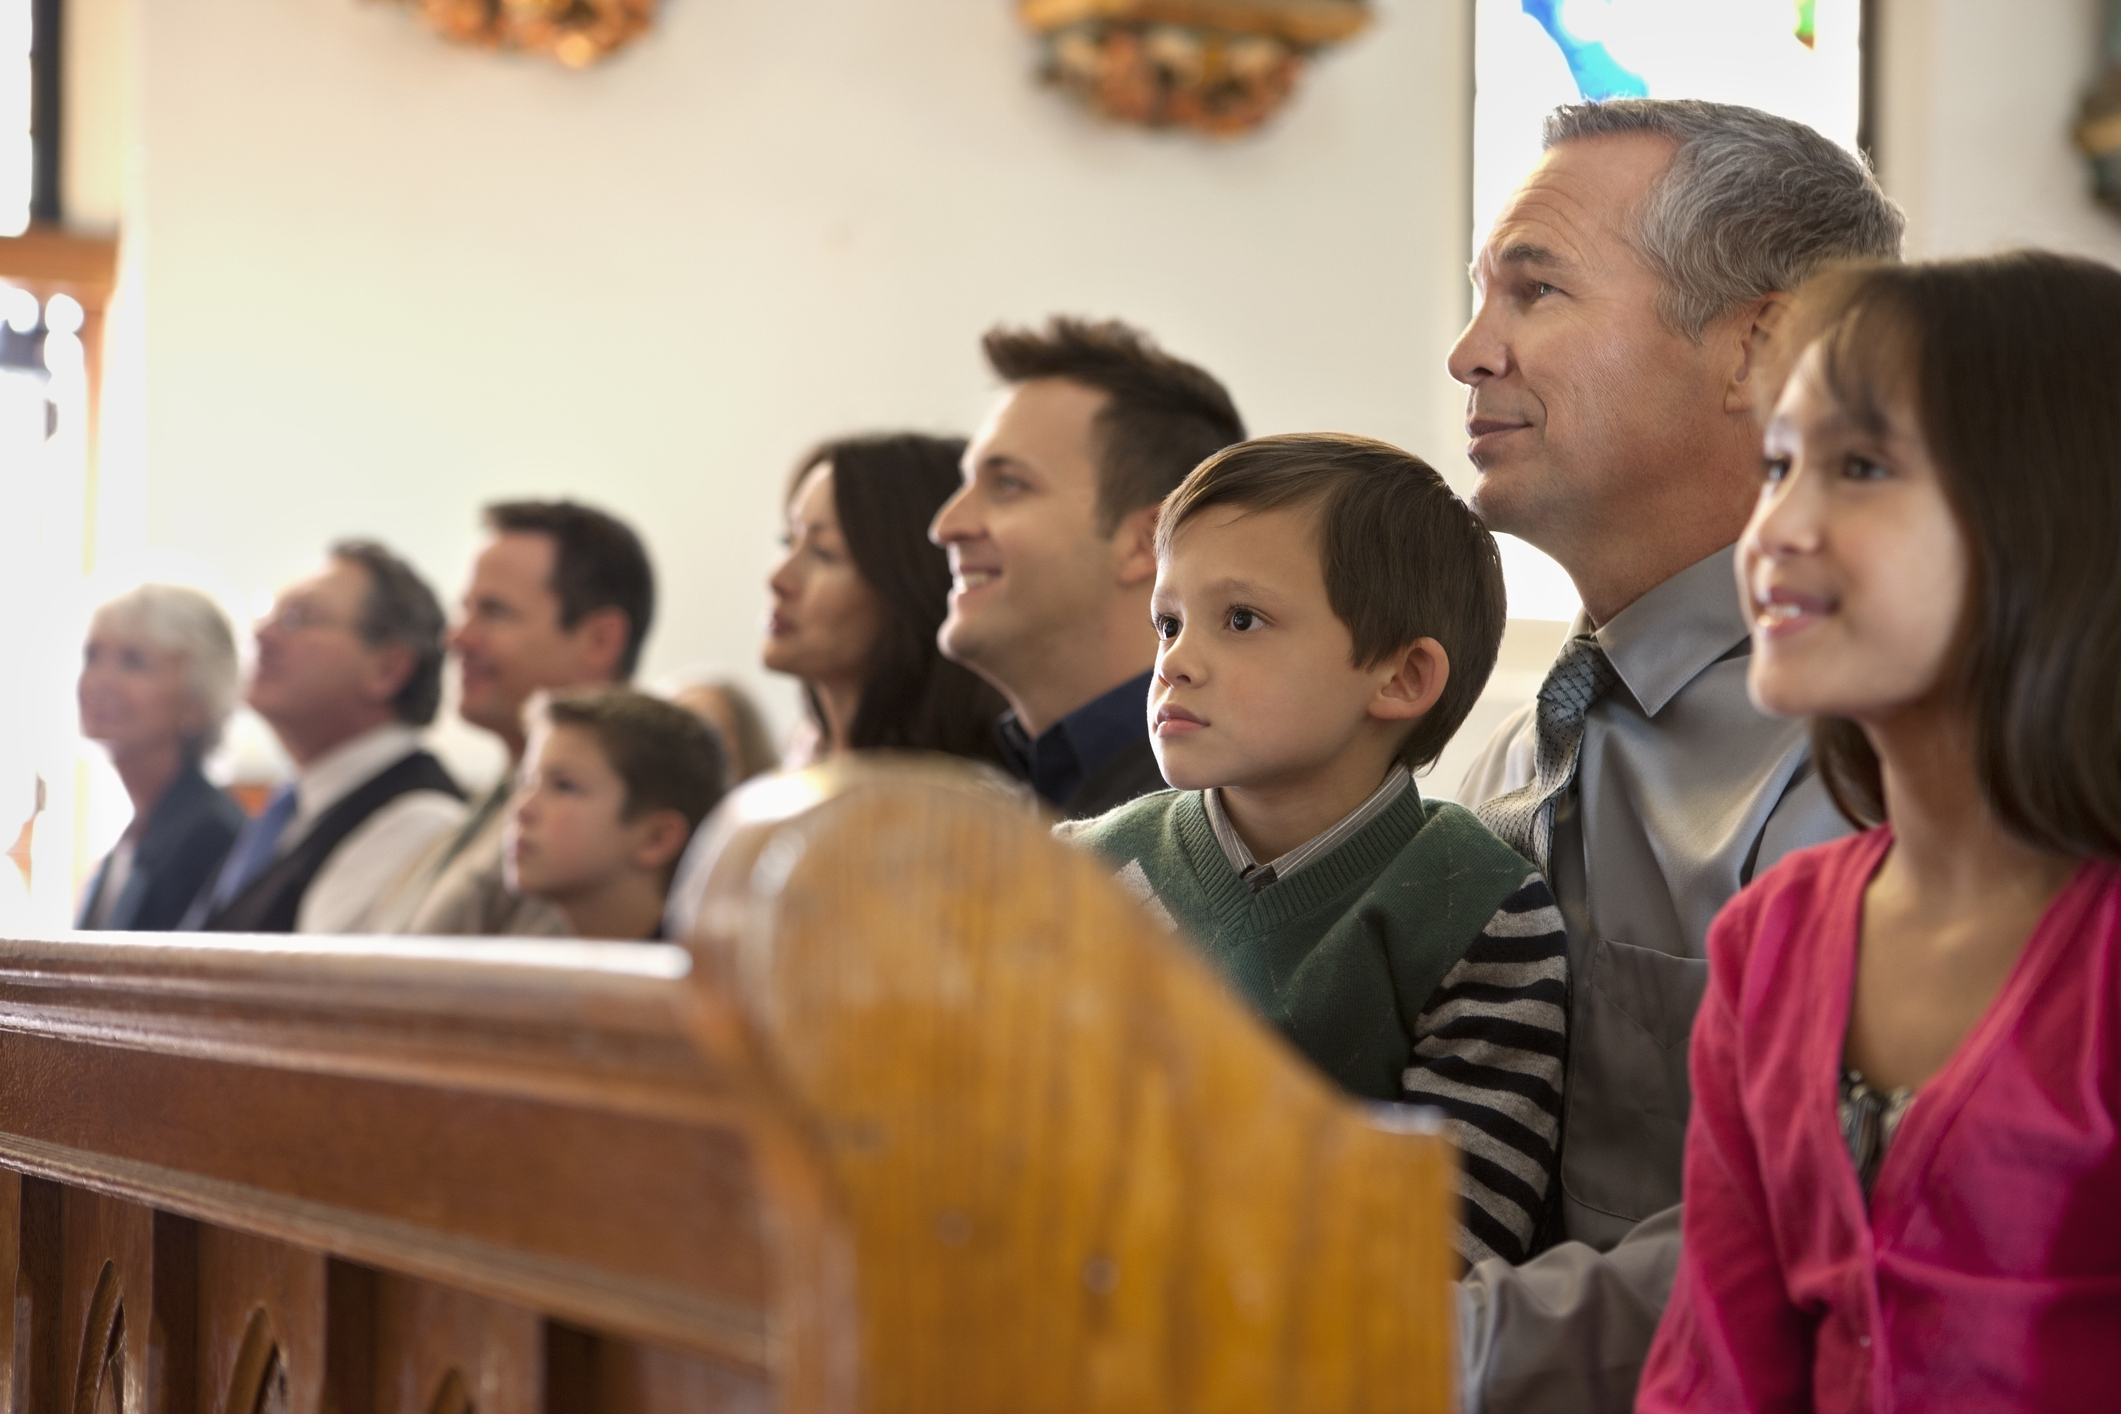 Congregation in church (Getty Images)